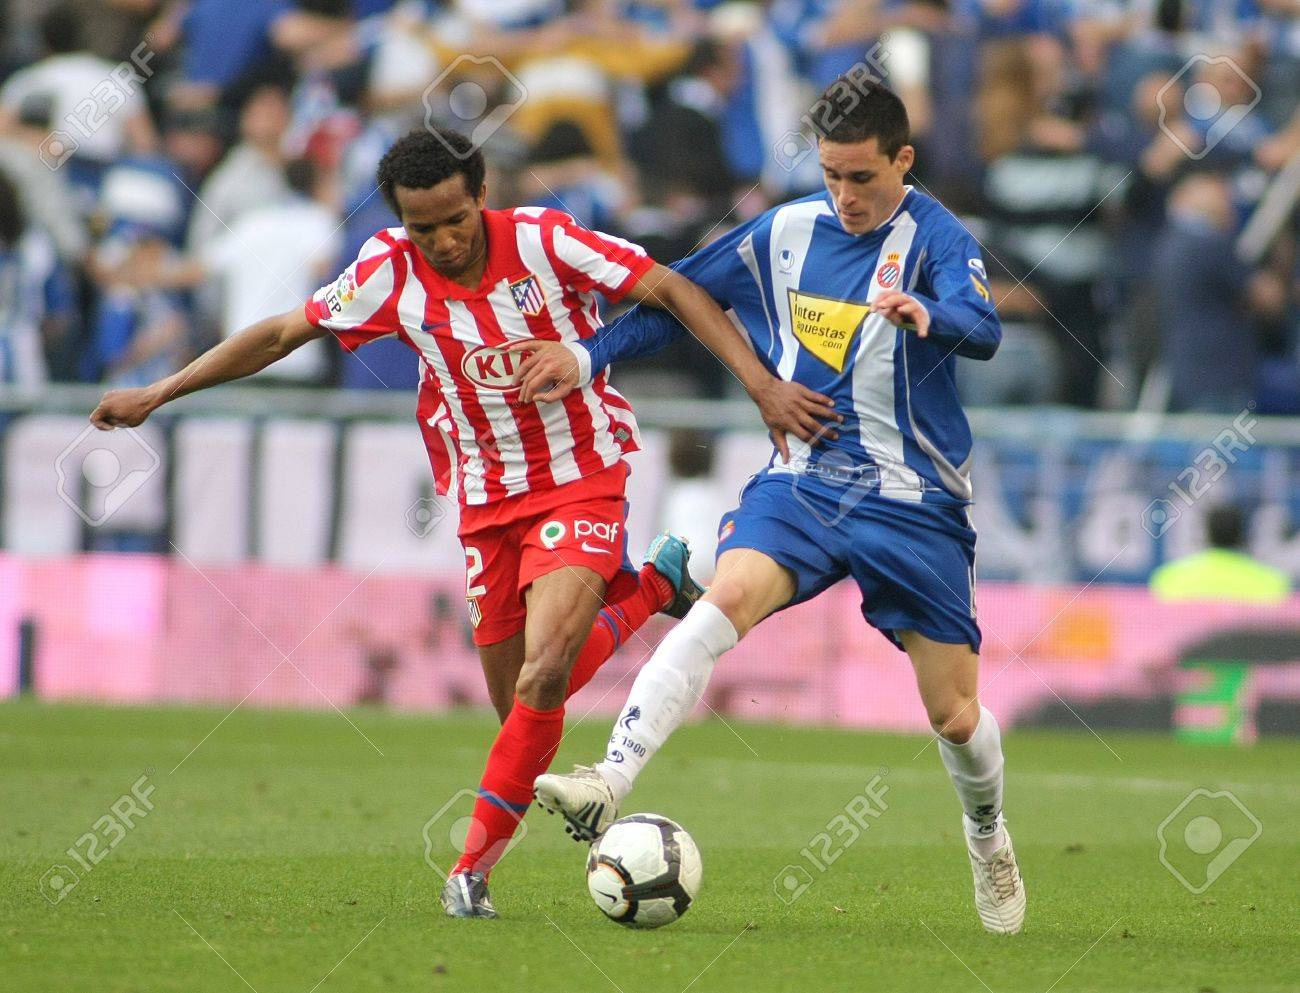 Assunçao(L) of Atletico Madrid fight with Callejon(R) Espanyol during a Spanish League match between  Espanyol and Atletico Madrid at the Estadi Cornella on April 11, 2010 in Barcelona, Spain Stock Photo - 9082135